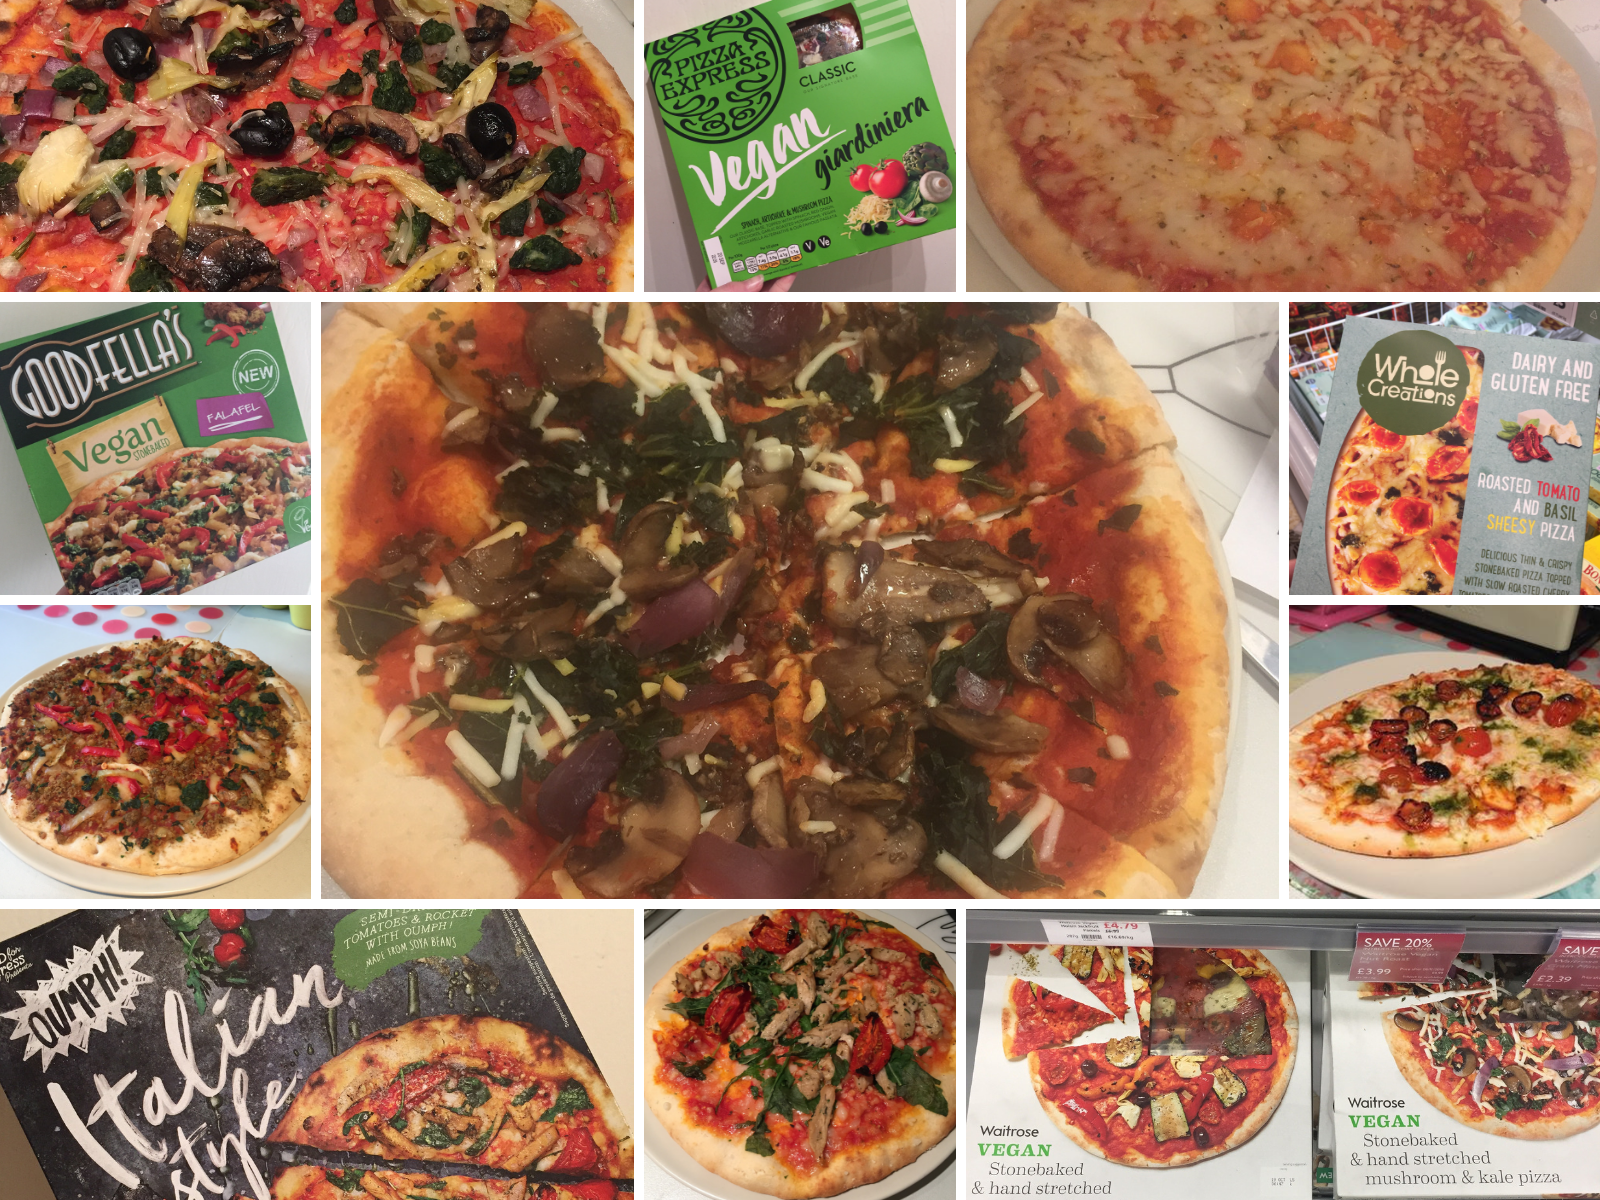 Chilled Frozen Vegan Pizza Available In Supermarkets